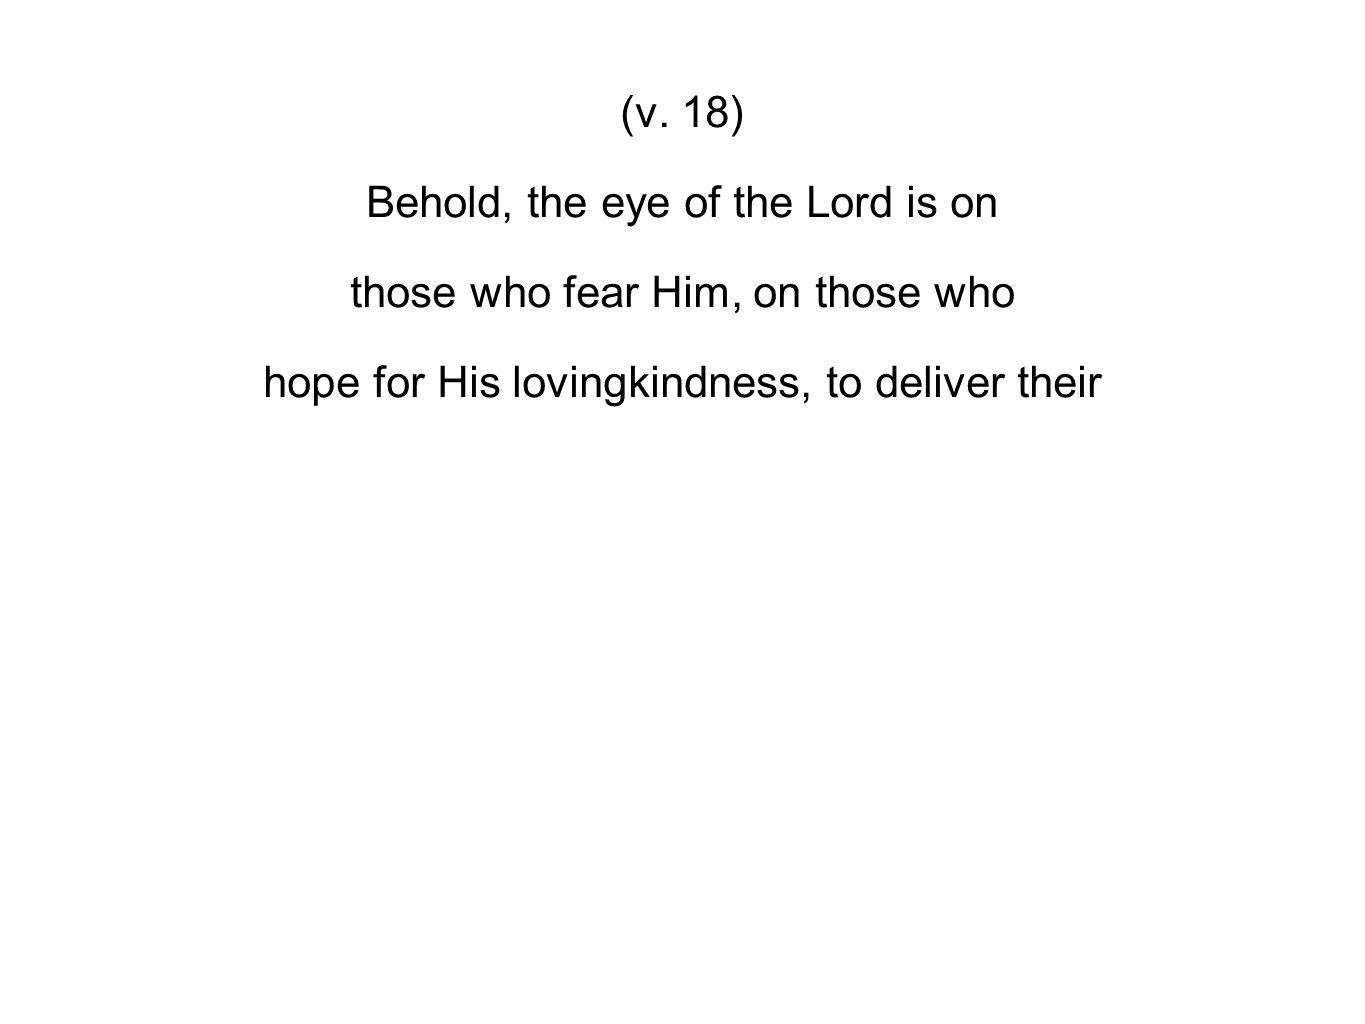 (v. 18) Behold, the eye of the Lord is on those who fear Him, on those who hope for His lovingkindness, to deliver their